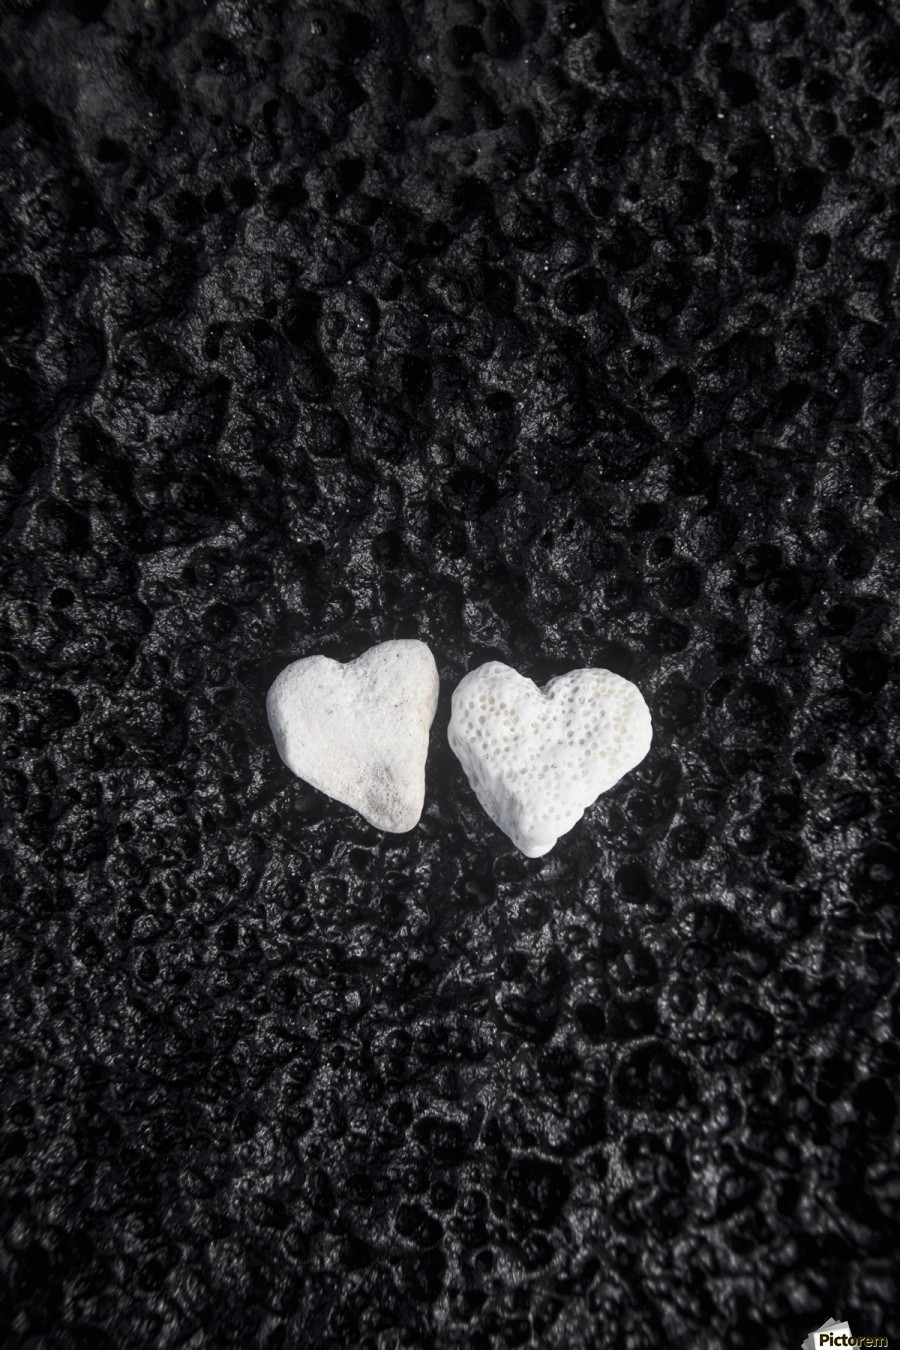 Two white coral heart shaped rocks placed together on a wet lava rock near the ocean; Honolulu, Oahu, Hawaii, United States of America  Print